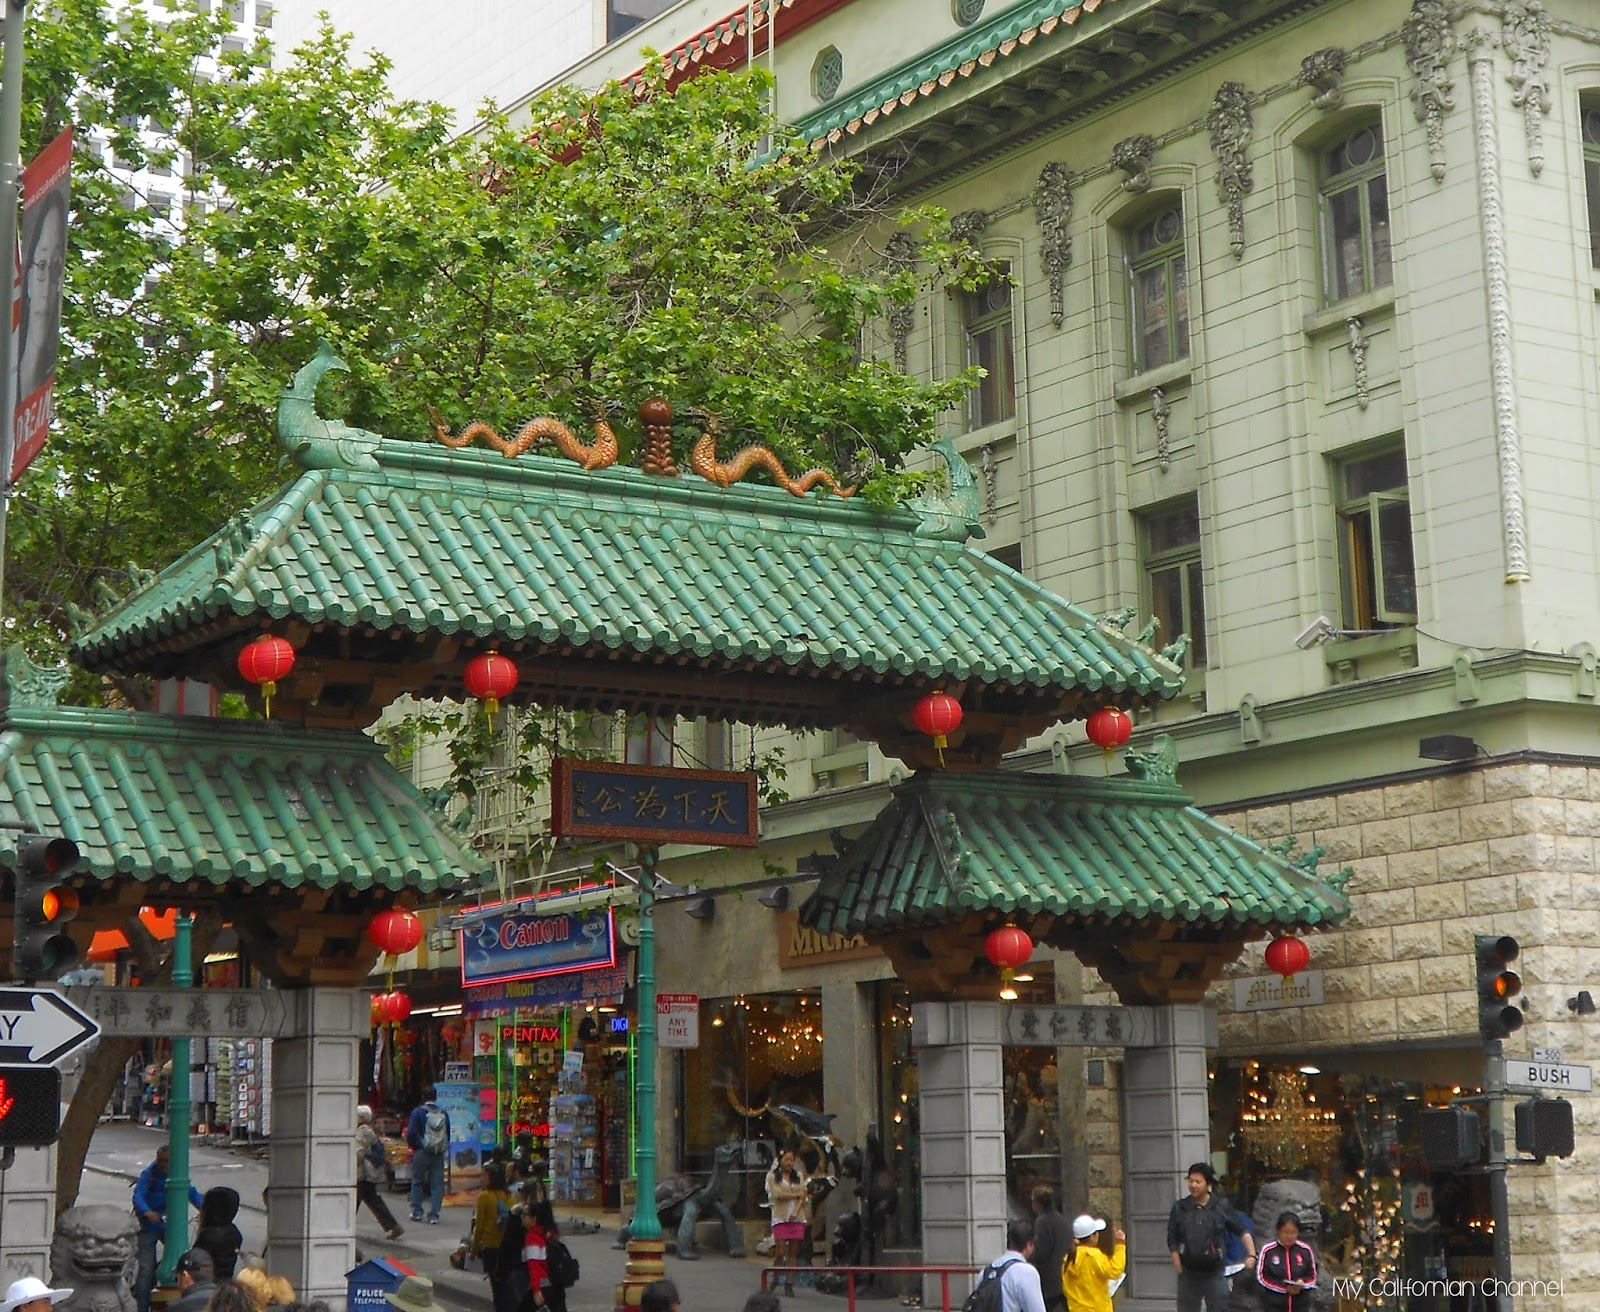 http://www.mytravelingchannel.fr/2014/04/san-francisco-part-2-chinatown-le-plus.html